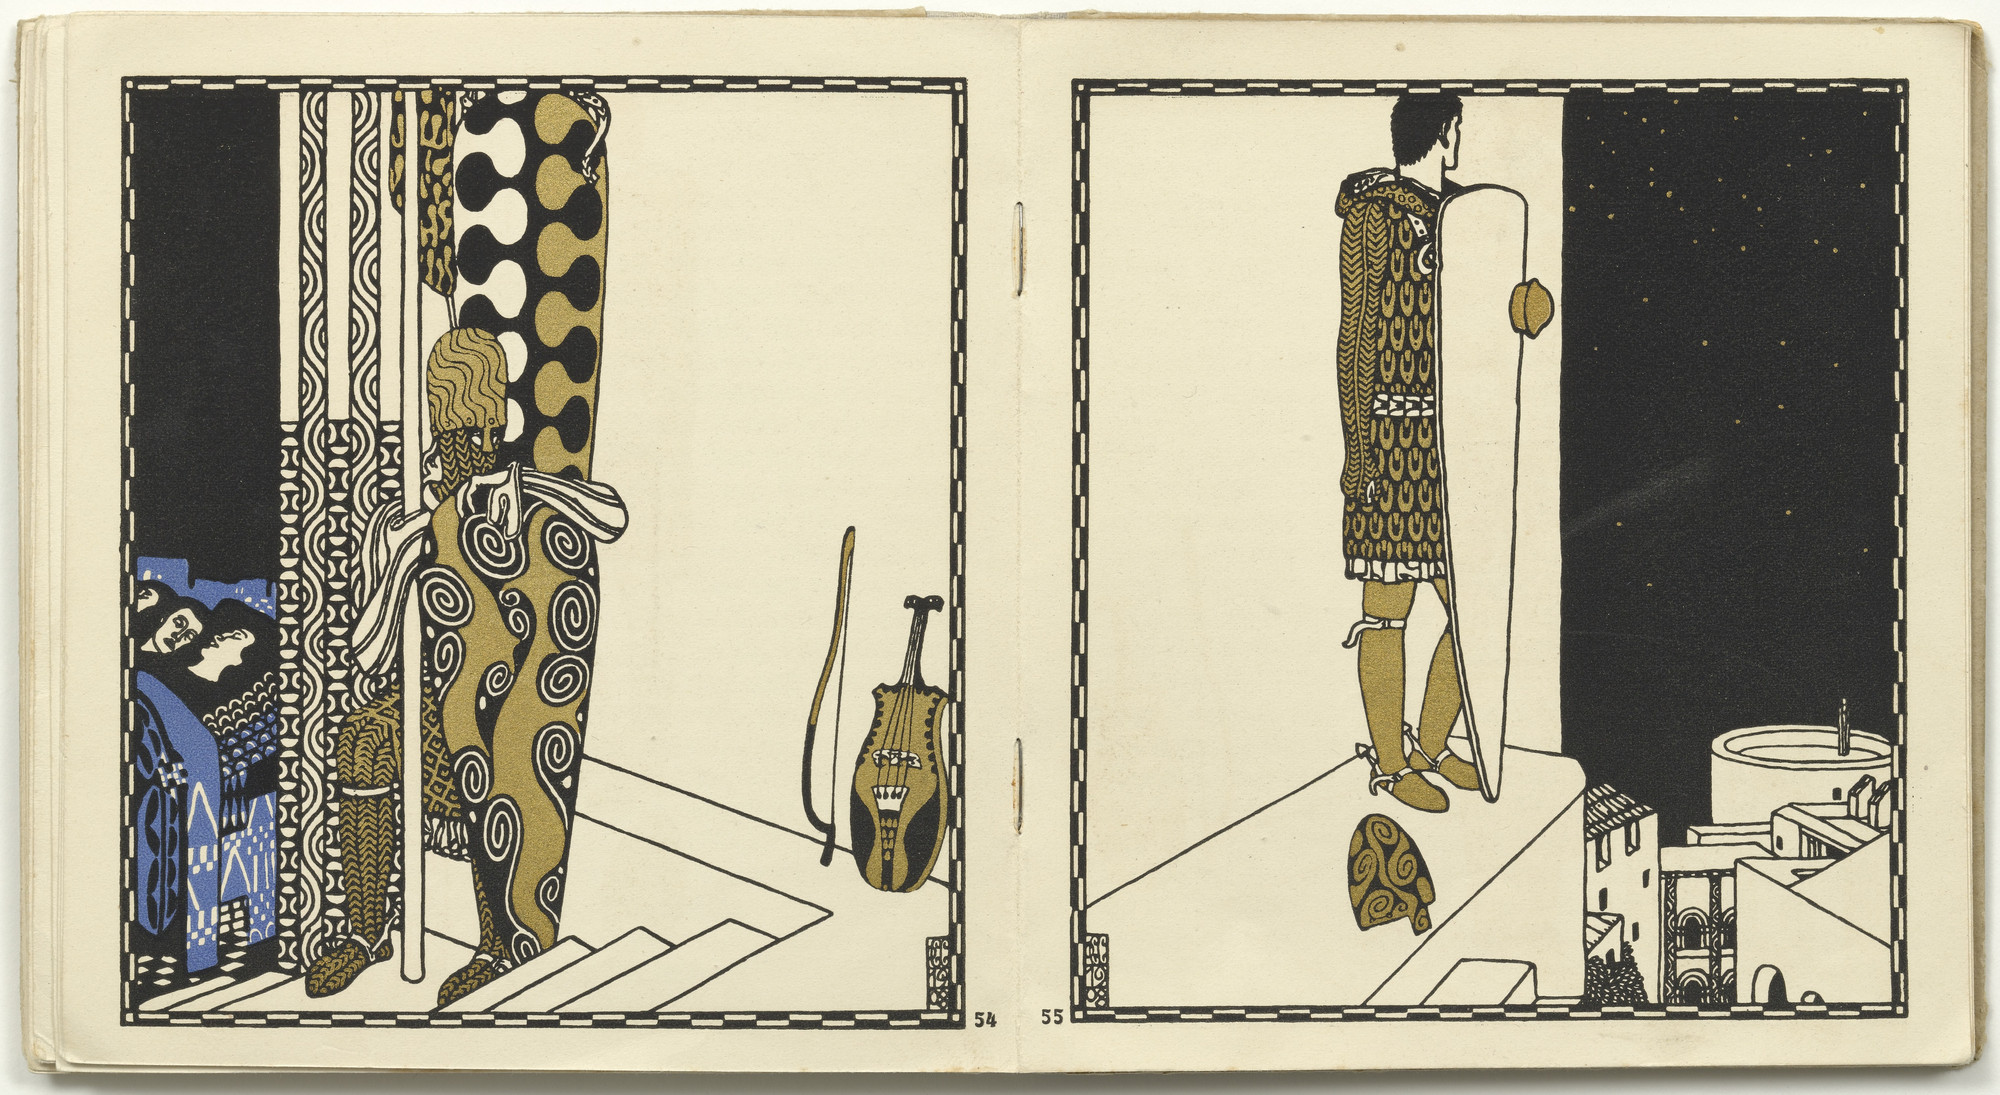 Carl Otto Czeschka. Untitled from Die Nibelungen (The Nibelungs). (1920)